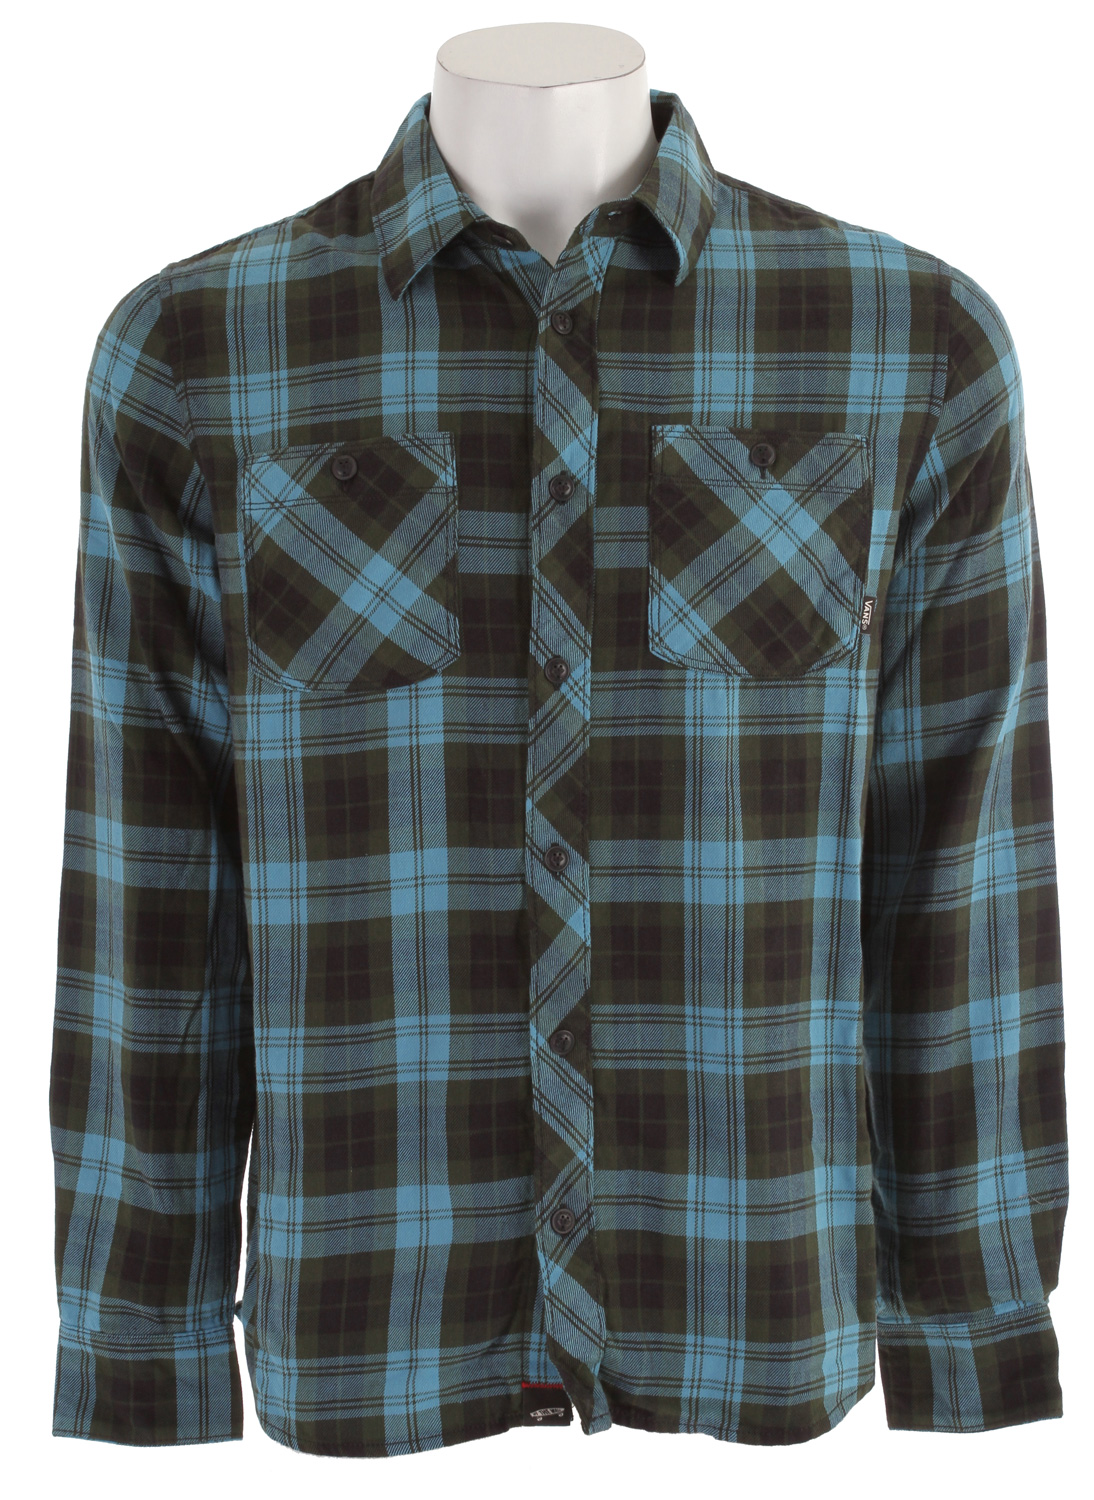 Skateboard Key Features of the Vans Marr Flannel Shirt: 100% Cotton long sleeve unbrushed ? annel with double chest pockets with Vans ? ag label Tahoe trim fabric at inner yoke Vans clamp label on bottom placket V-stitch detail on back yoke Slim Fit - $48.95